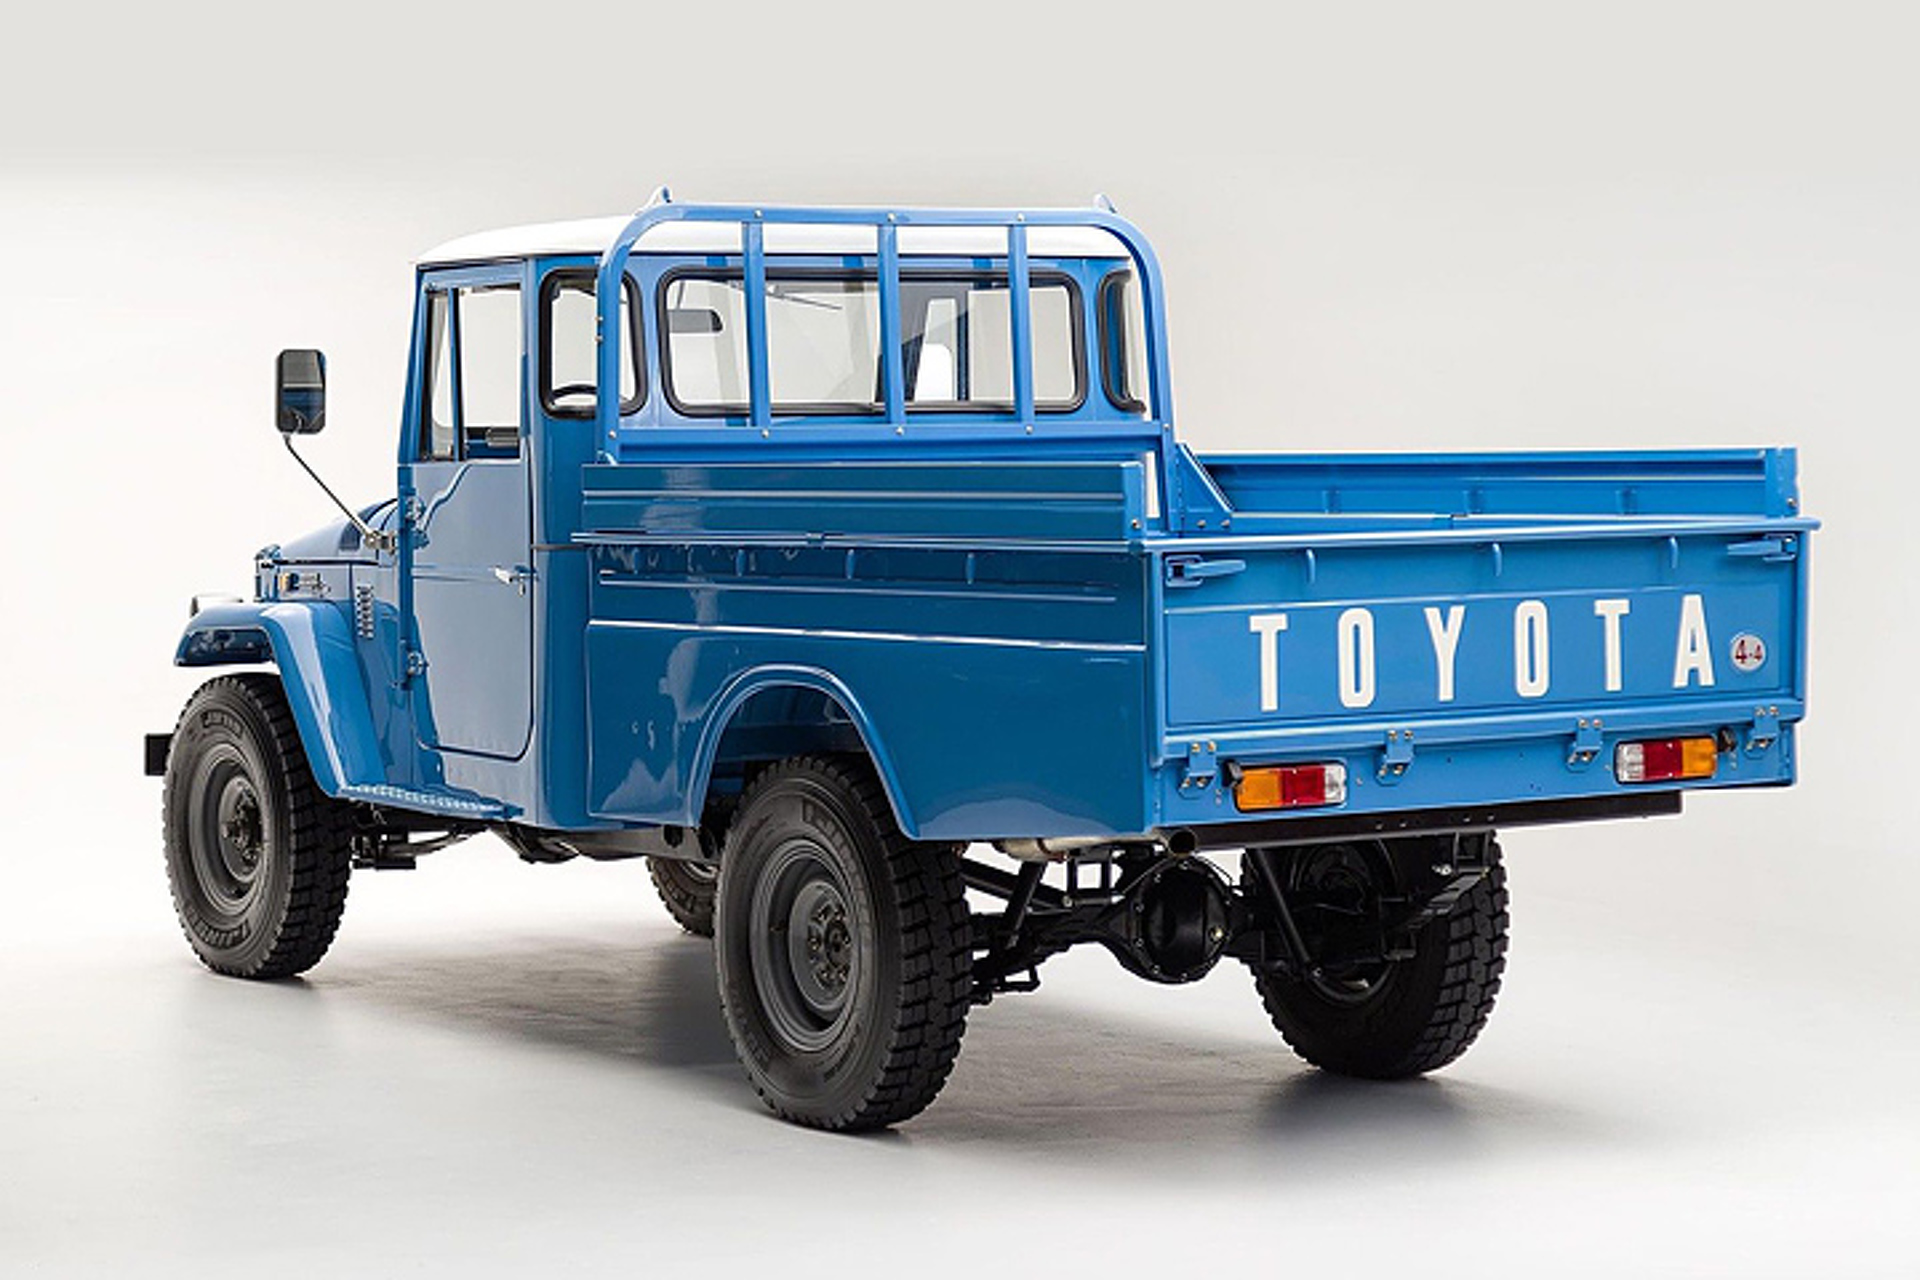 Beautifully Restored Toyota Land Cruiser Pickup in Need of a Good Home